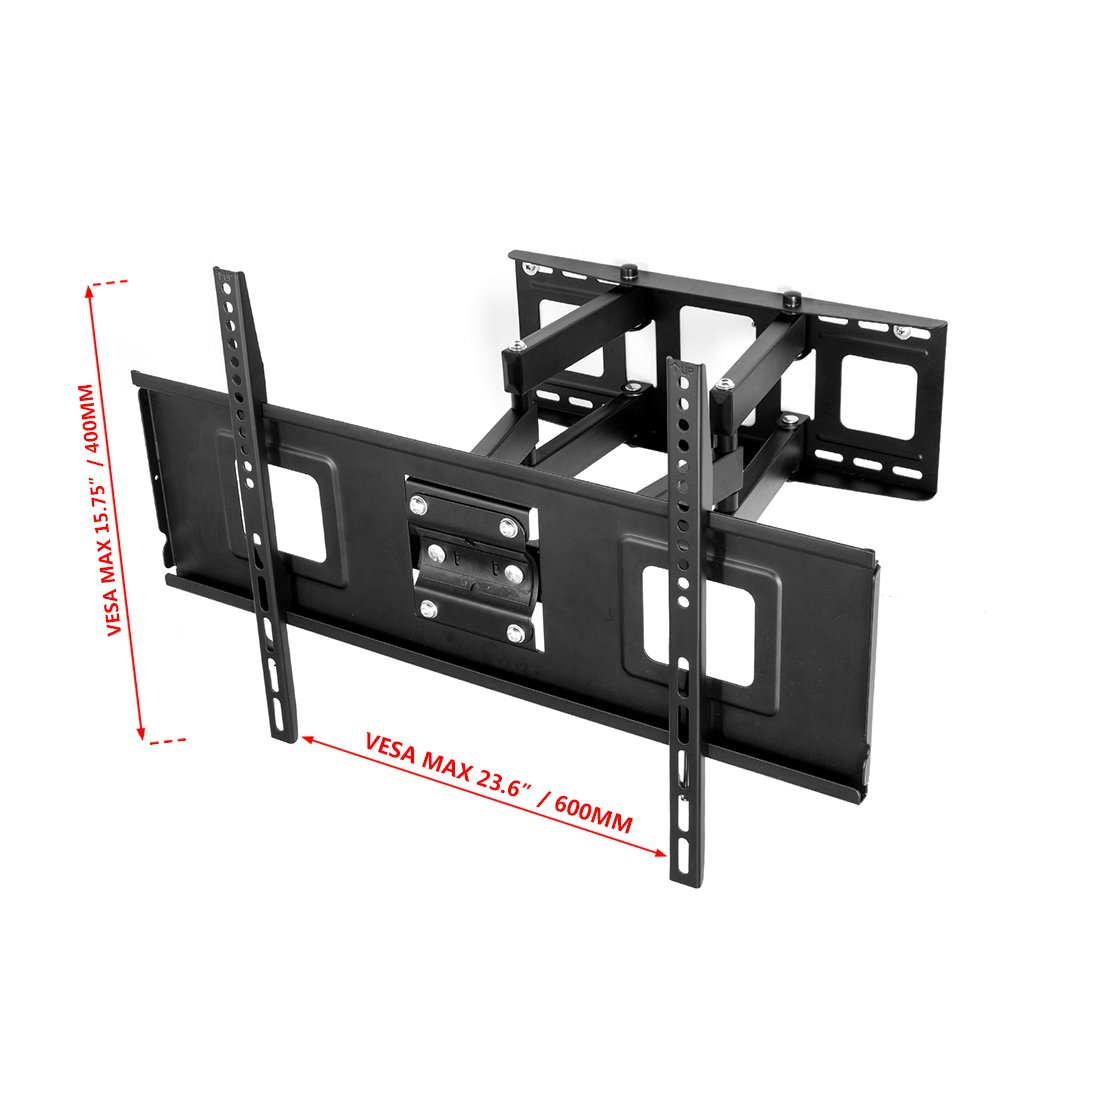 Amazoncom FLEXIMOUNTS A04 Full Motion Articulating TV Wall Mount